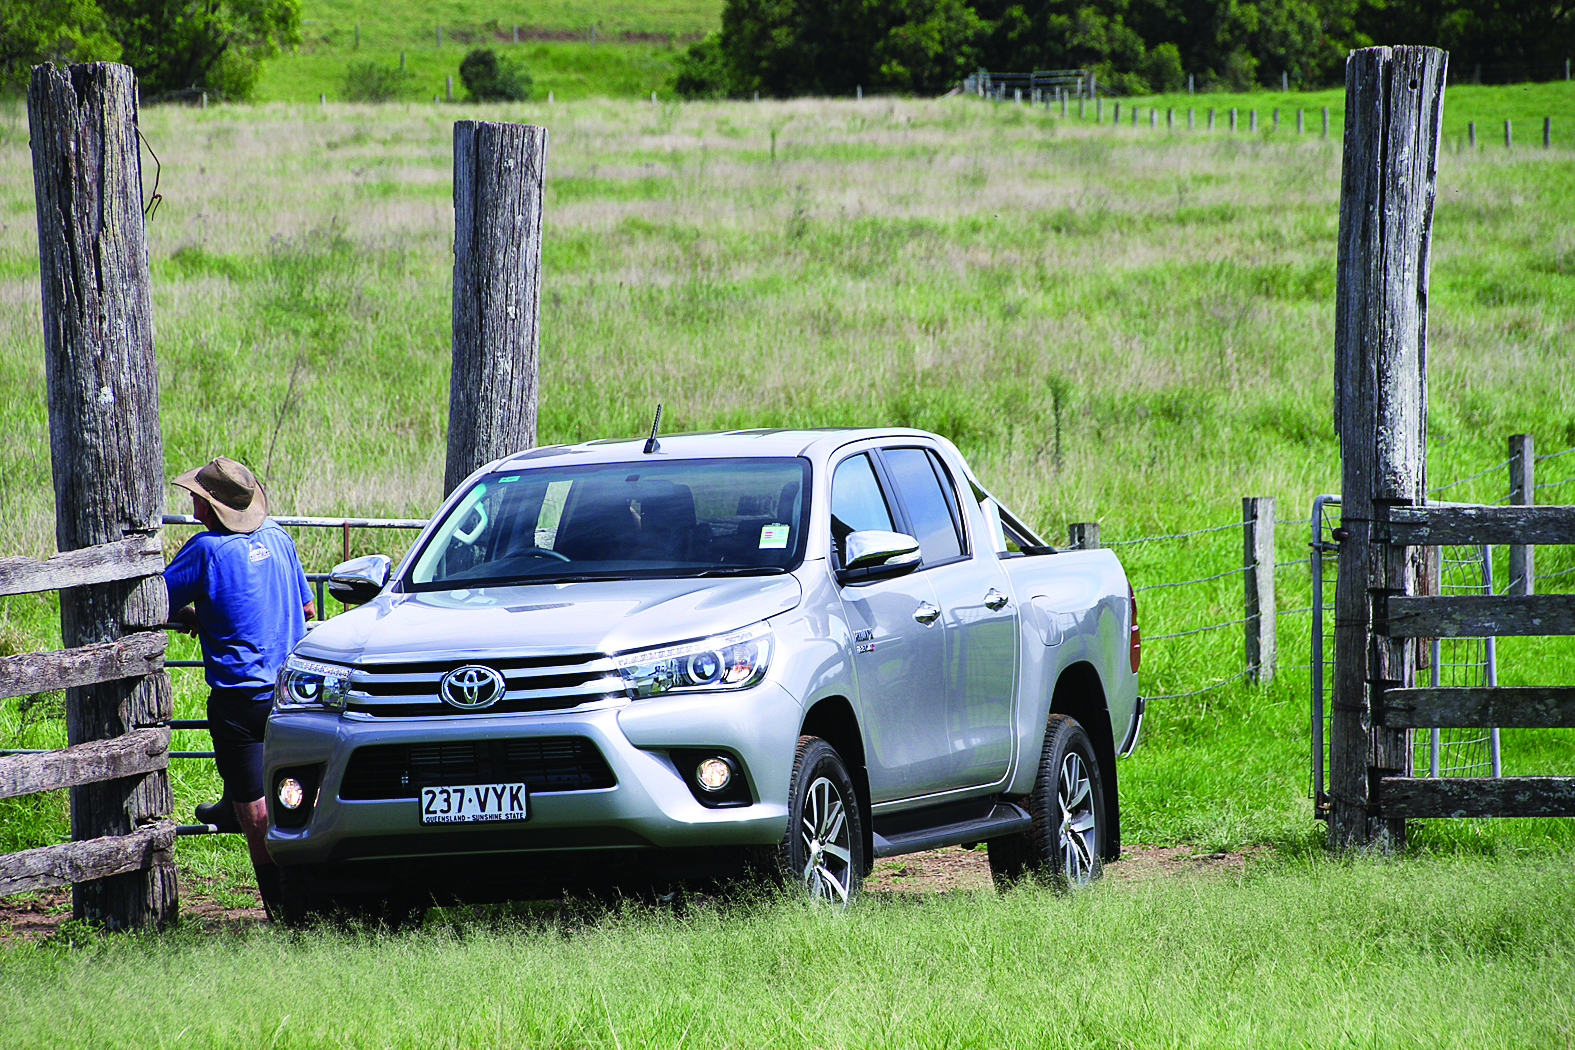 The new HiLux has been totally redesigned from the ground up with a stronger chassis and increased towing capacity, slick new external look and modern interior.